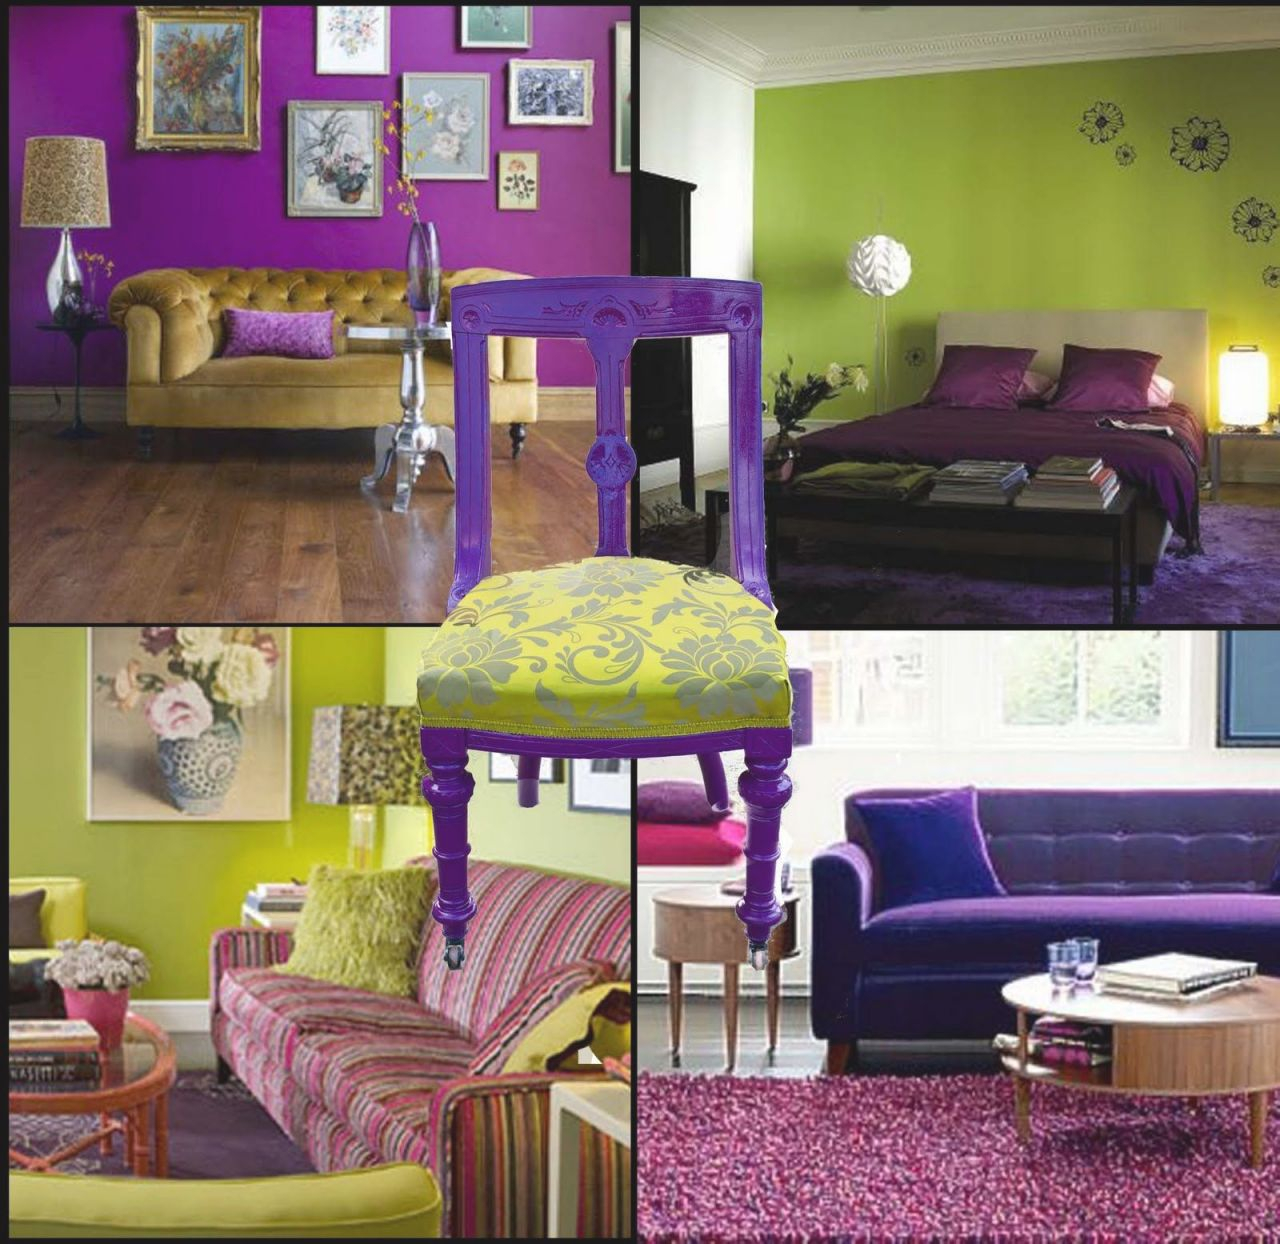 Very Cool Lime Green Purple Room Ideas! | Purple Living Room intended for 13+ Unique Ideas For Purple And Green Living Room Decor